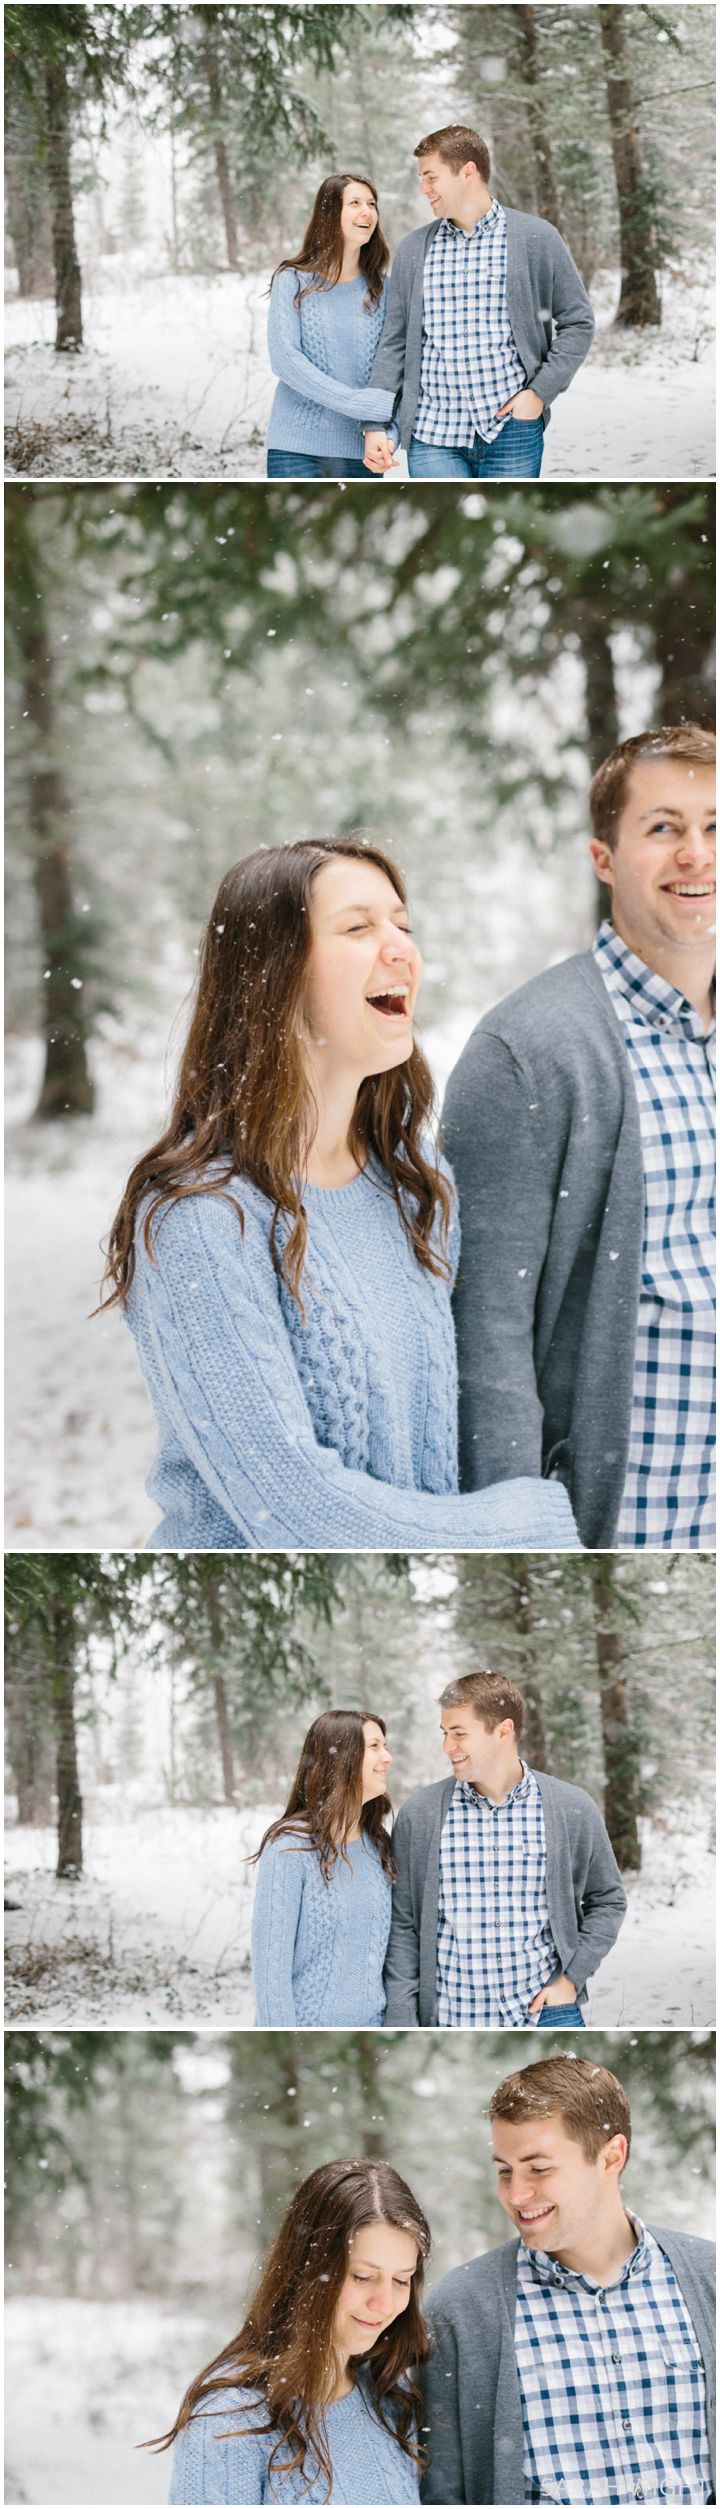 Utah Outdoor Winter Engagement photographer-13.jpg